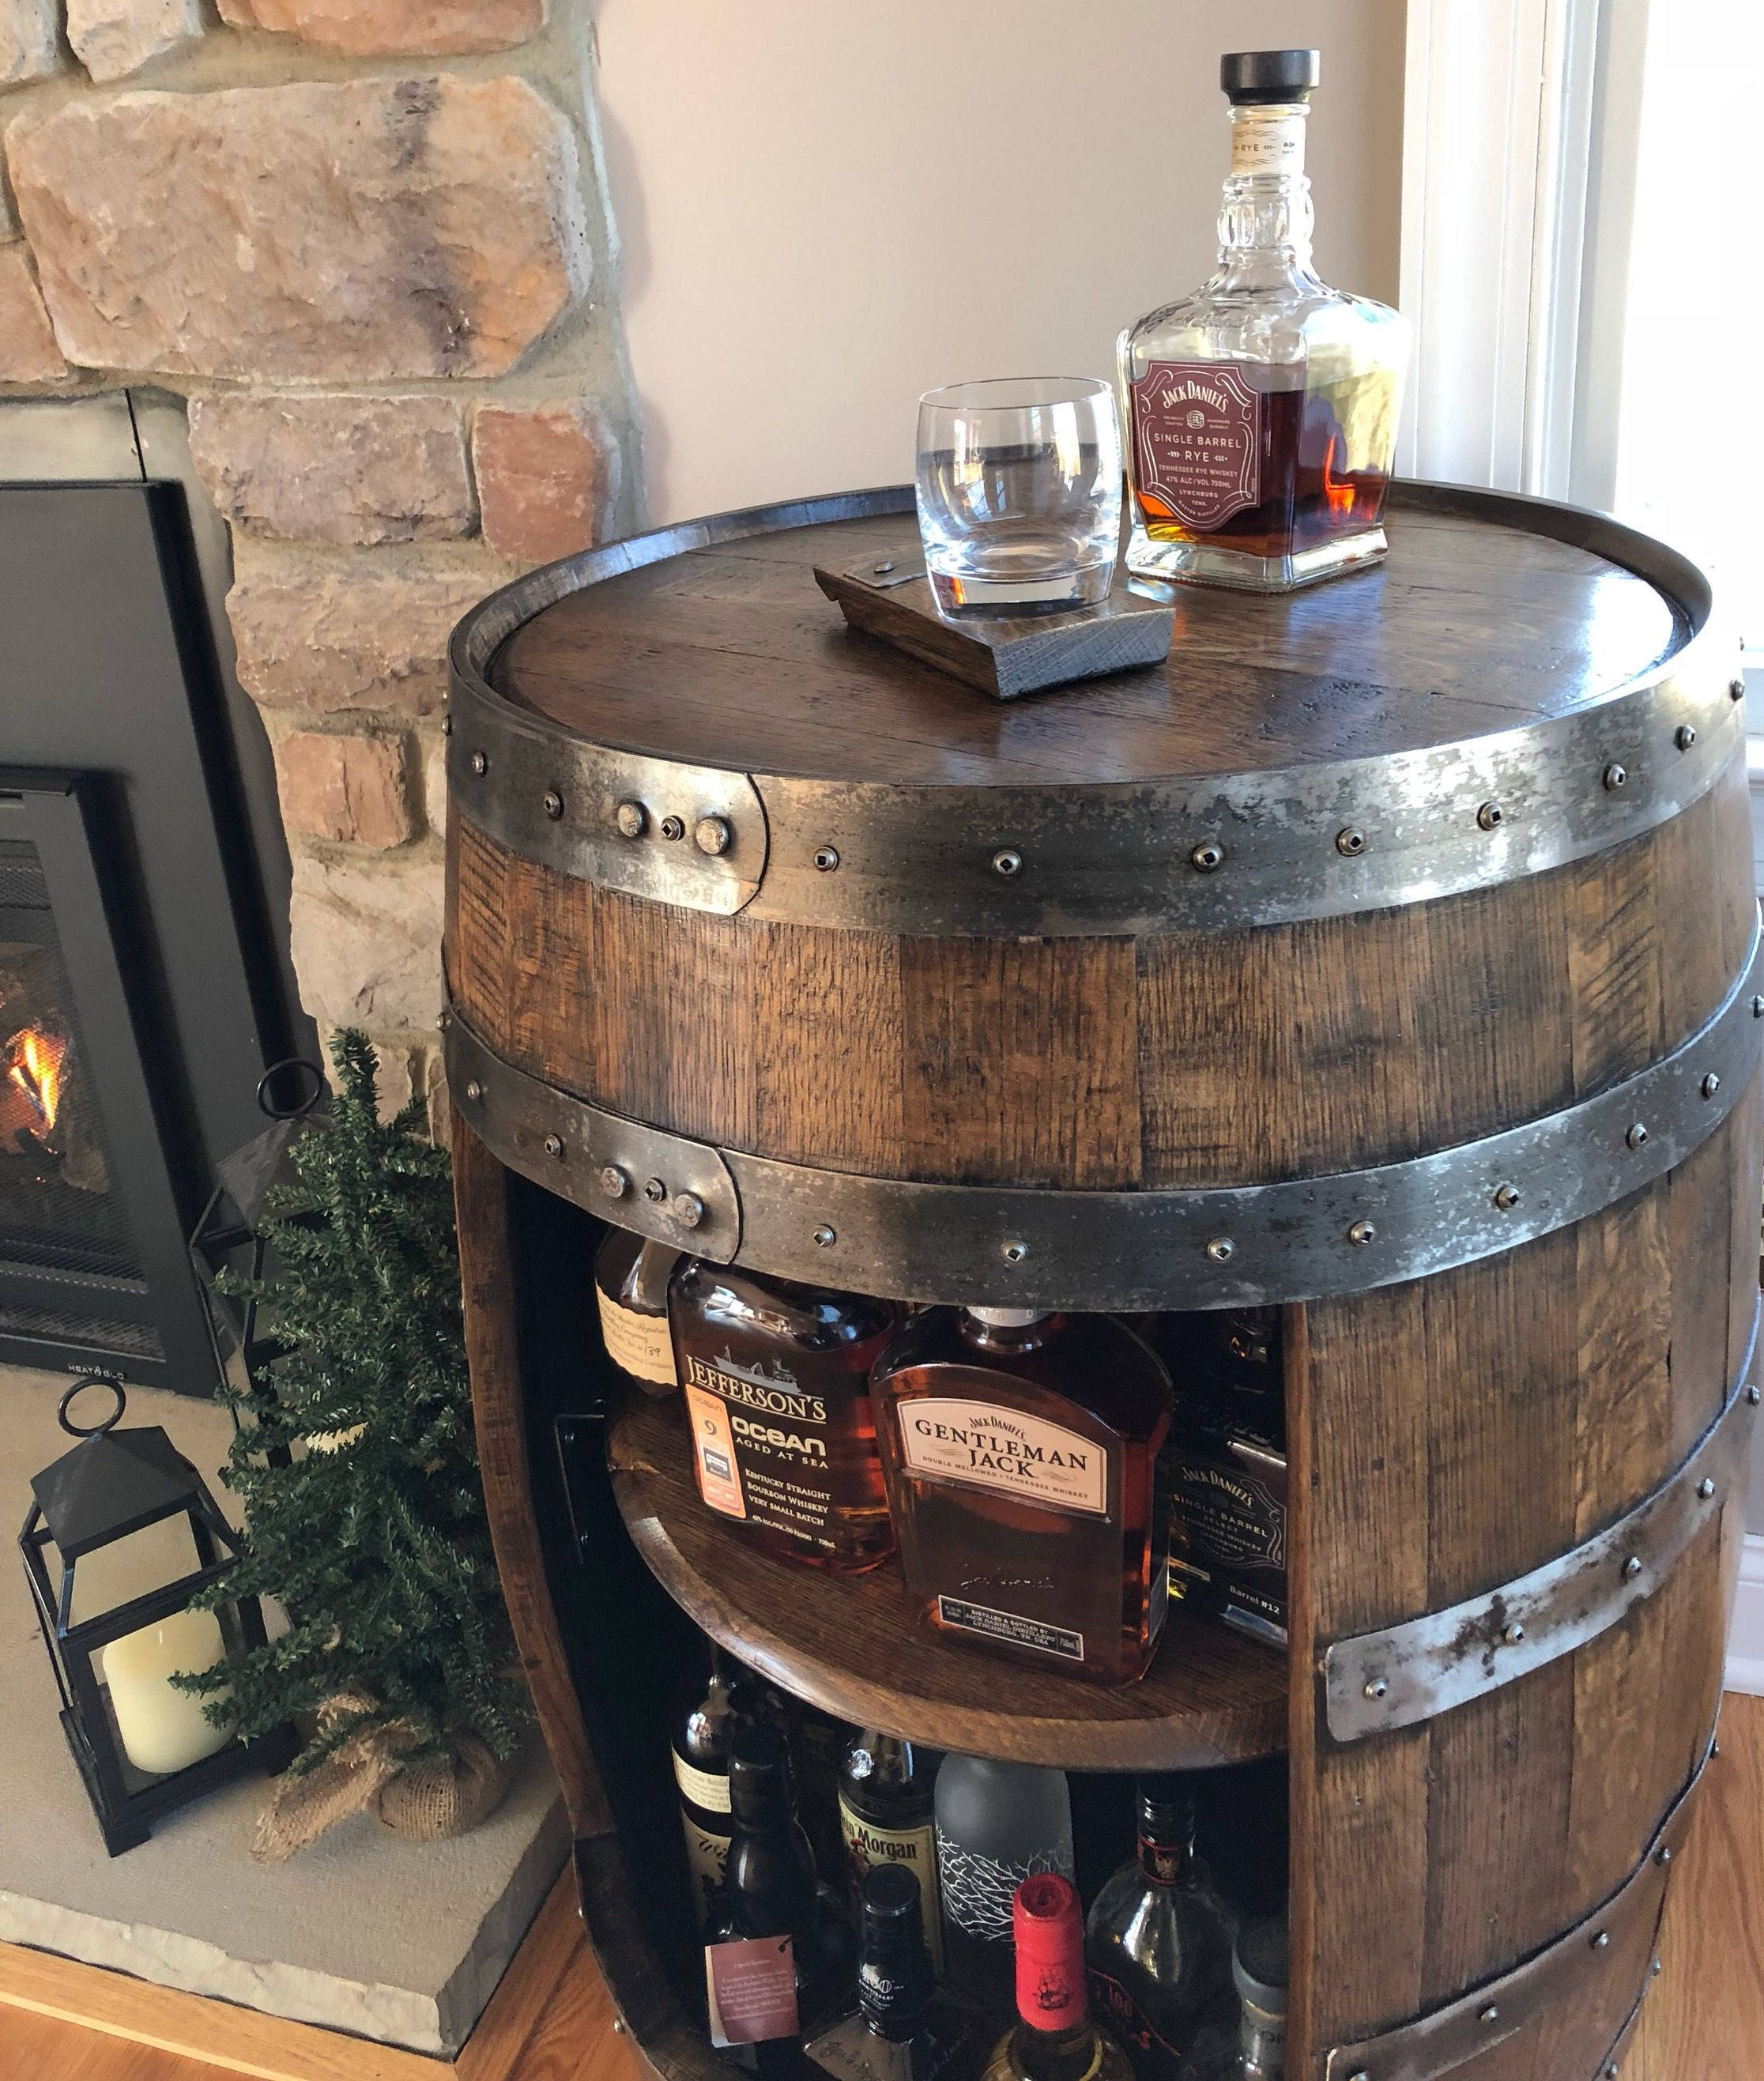 Whiskey Barrel Liquor Cabinet Handcrafted From A Reclaimed Whiskey Barrel Whiskey Barrel Wine Barrel Furniture Barrel Decor